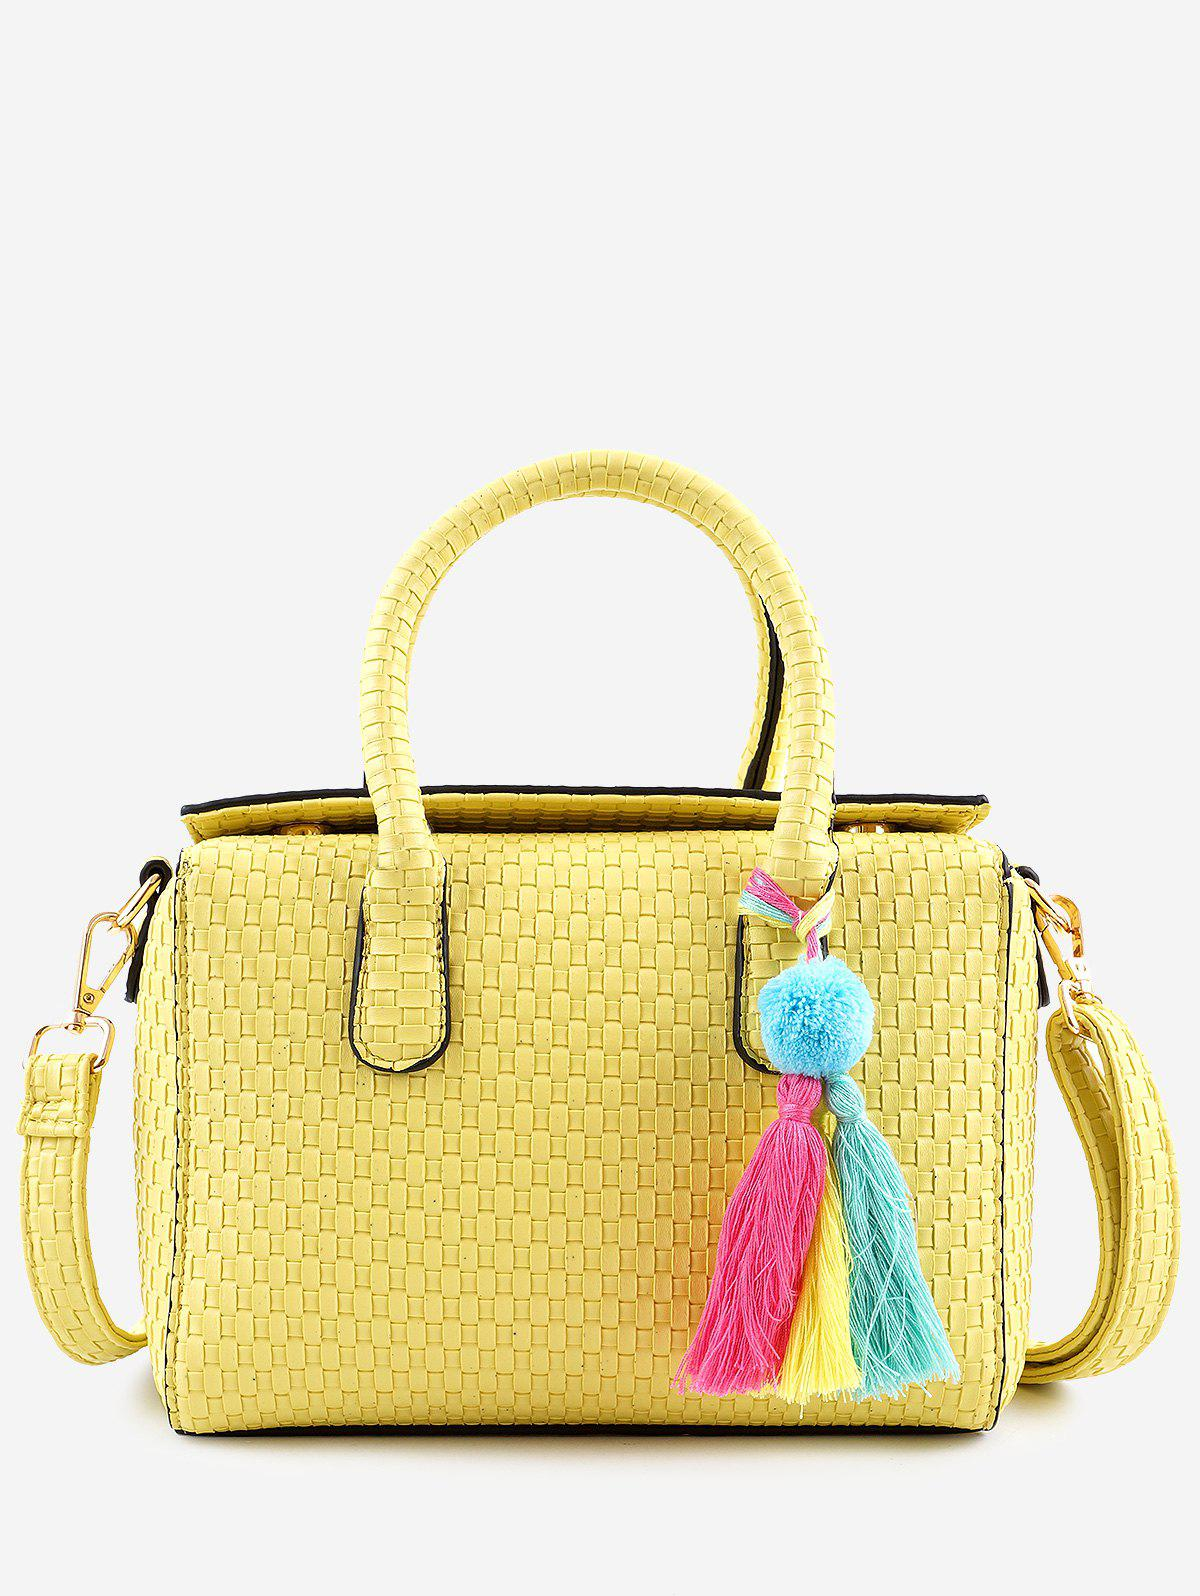 Unique Minimalist Leisure Vacation Tassels Braid Handbag